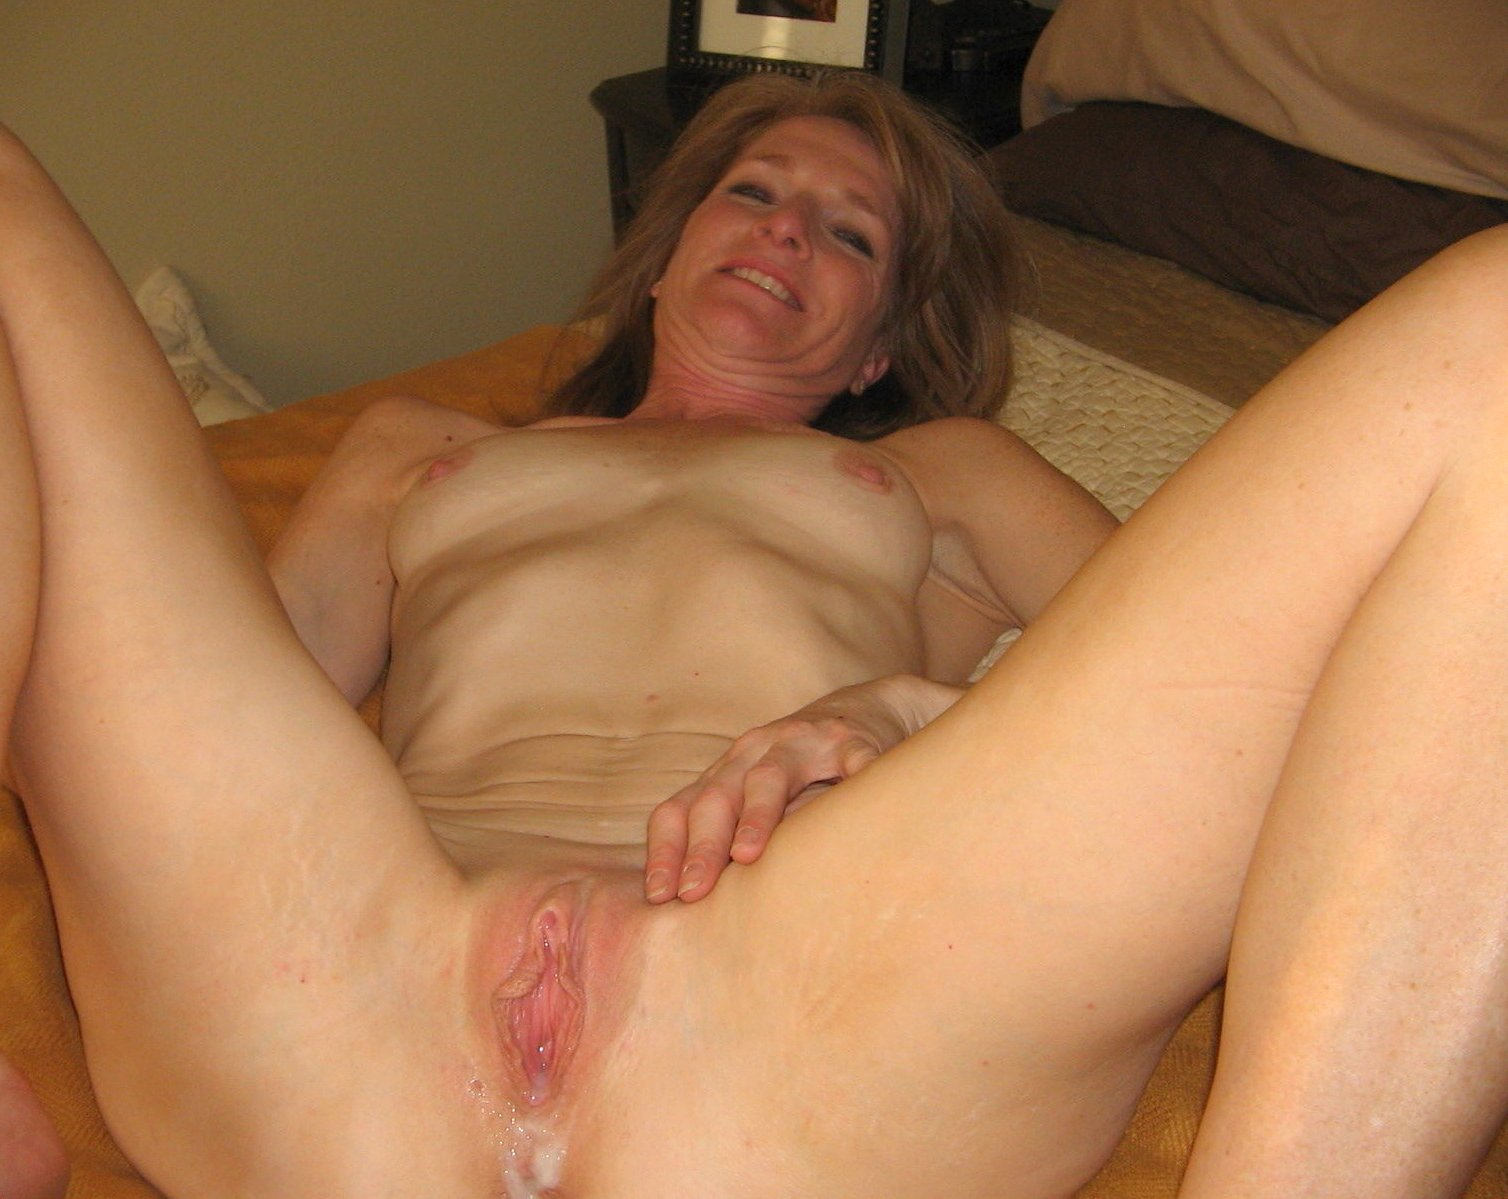 Watch beautiful amateur mom fucked by a big cock with a cumshot on her pussy